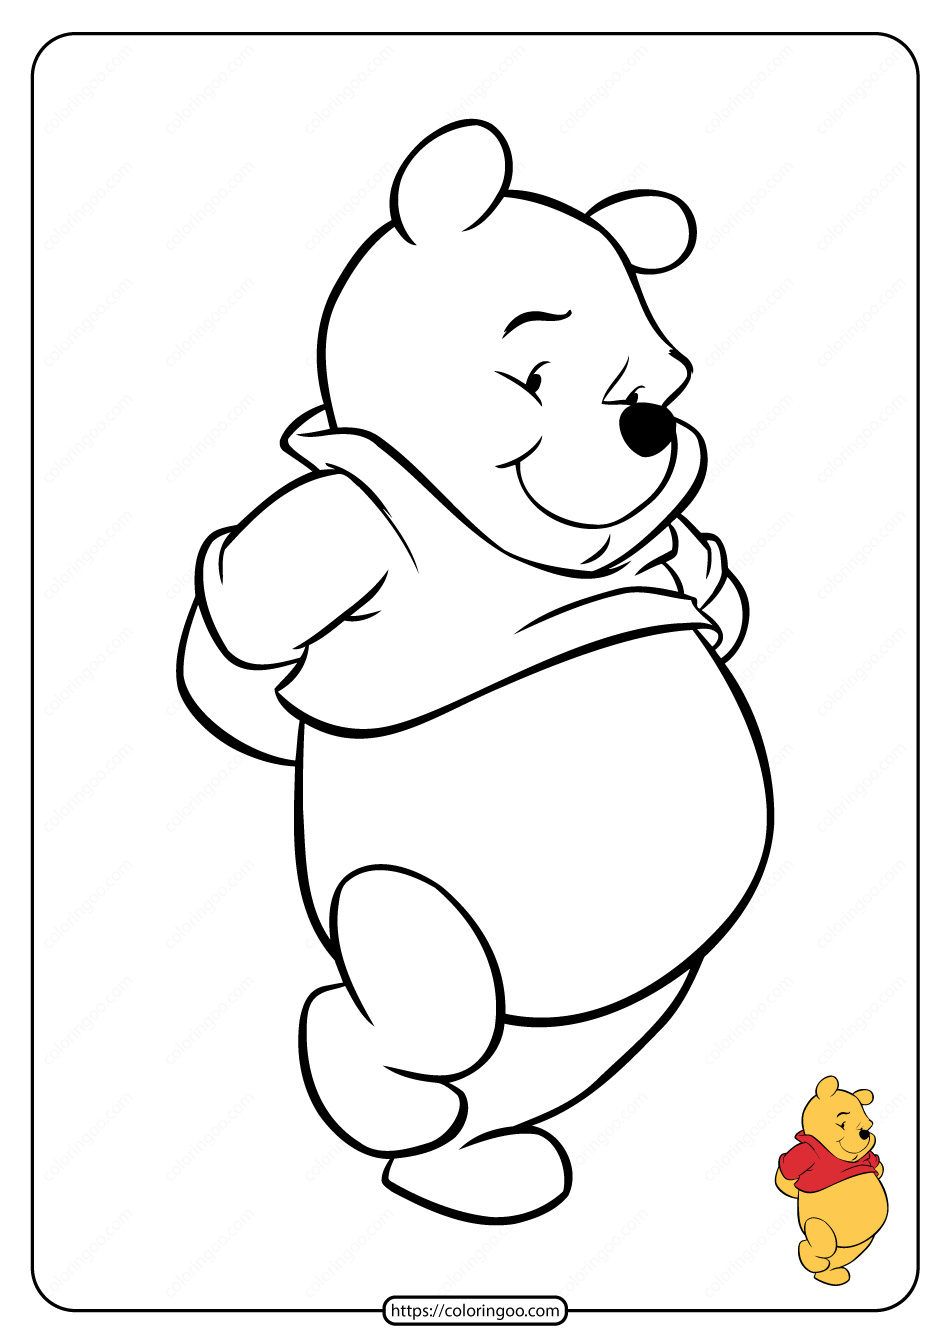 Printable Winnie the Pooh Pdf Coloring Pages 14